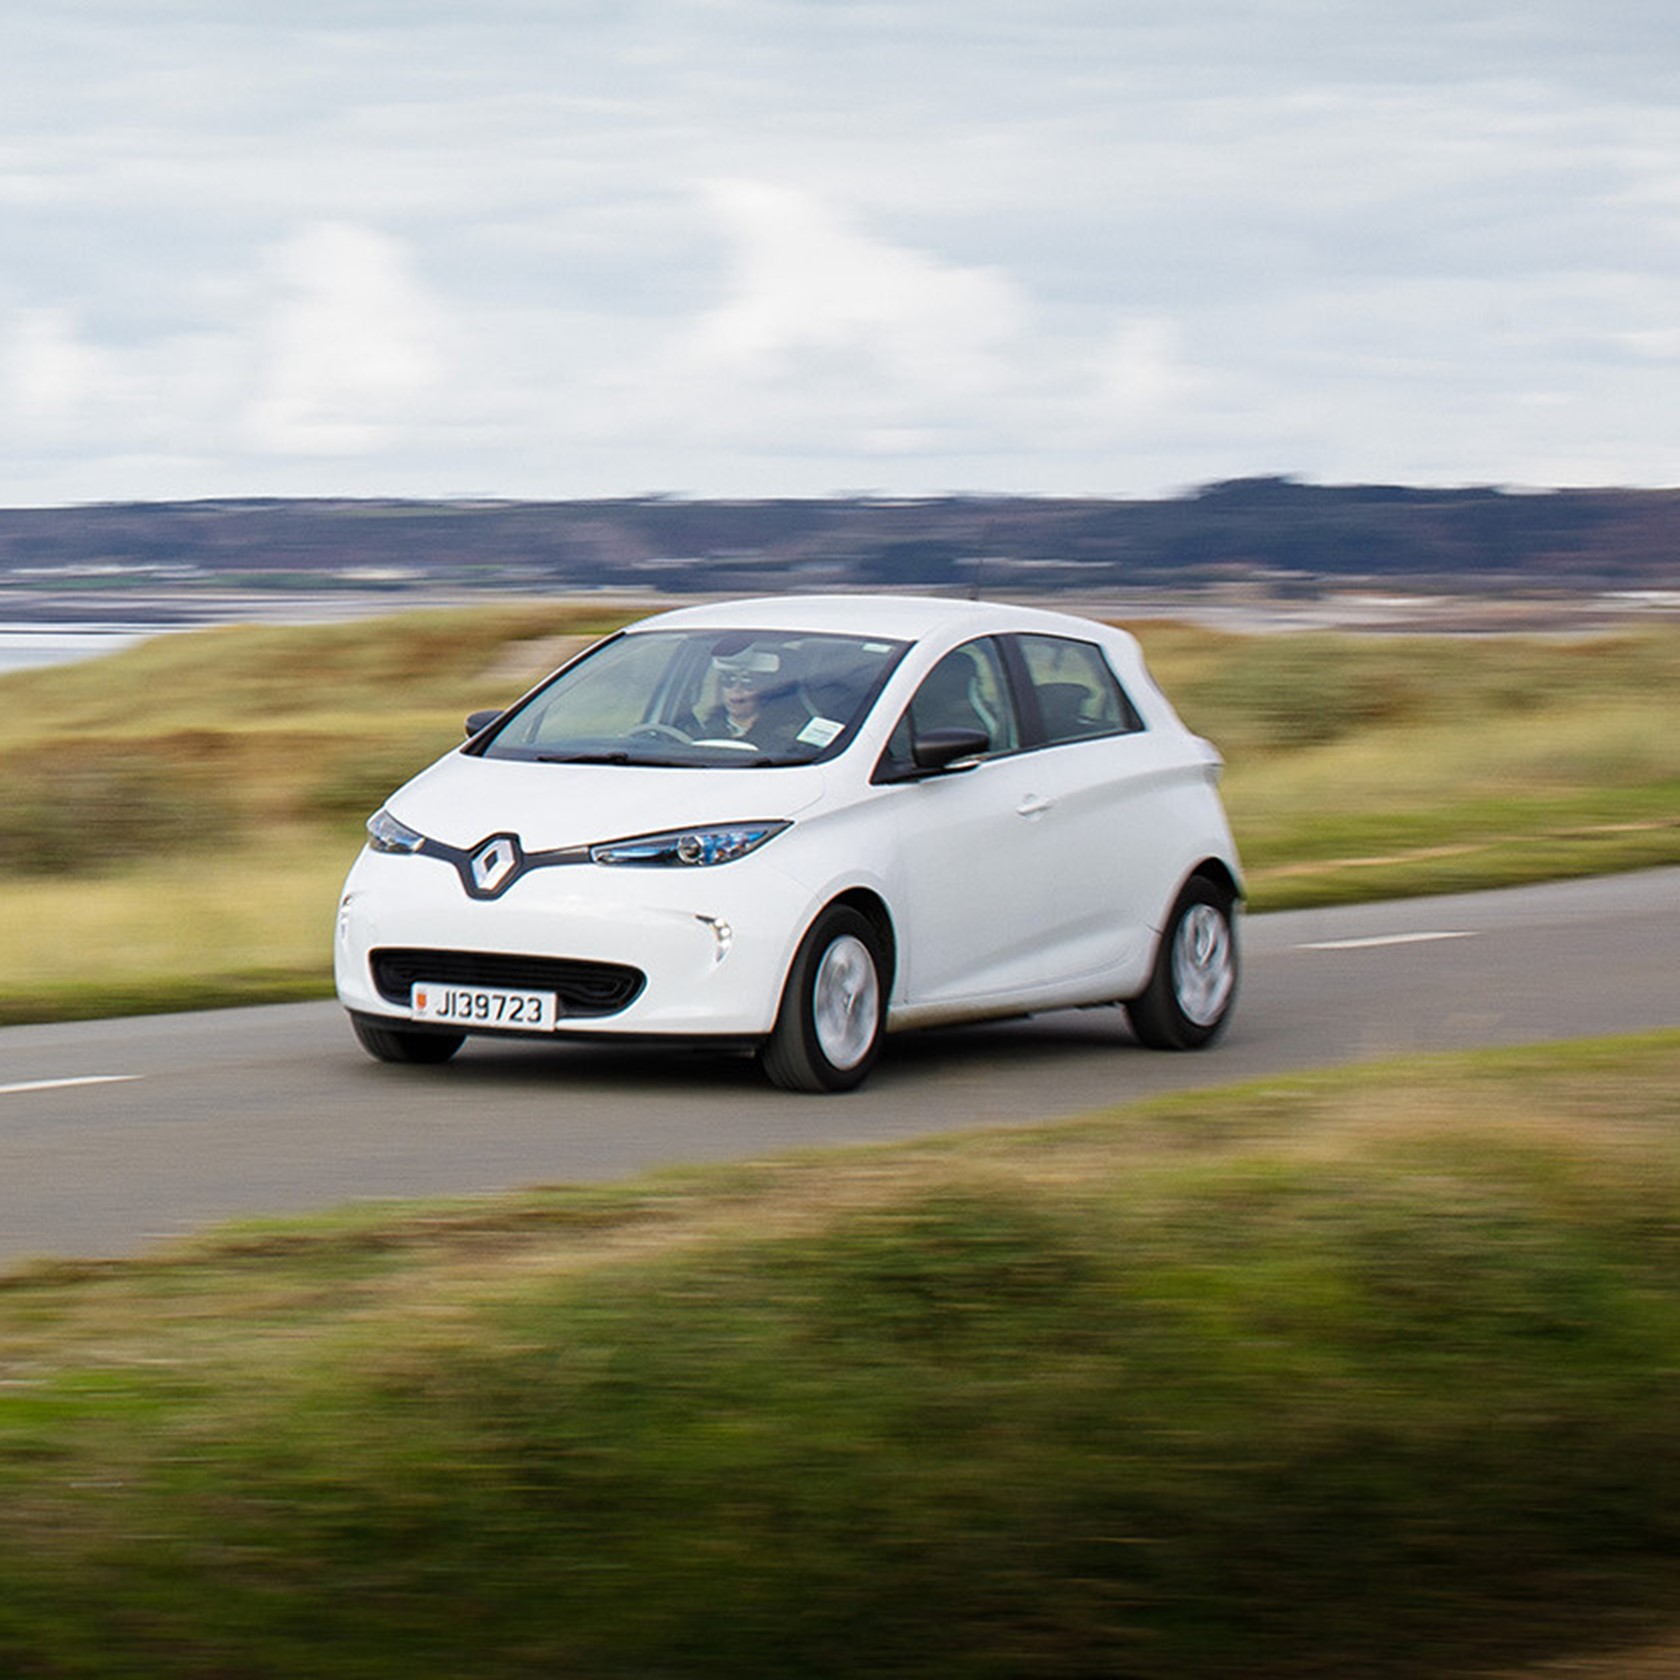 An electric vehicle speeds across the Five Mile Road in St Ouen on a cloudy covered day.